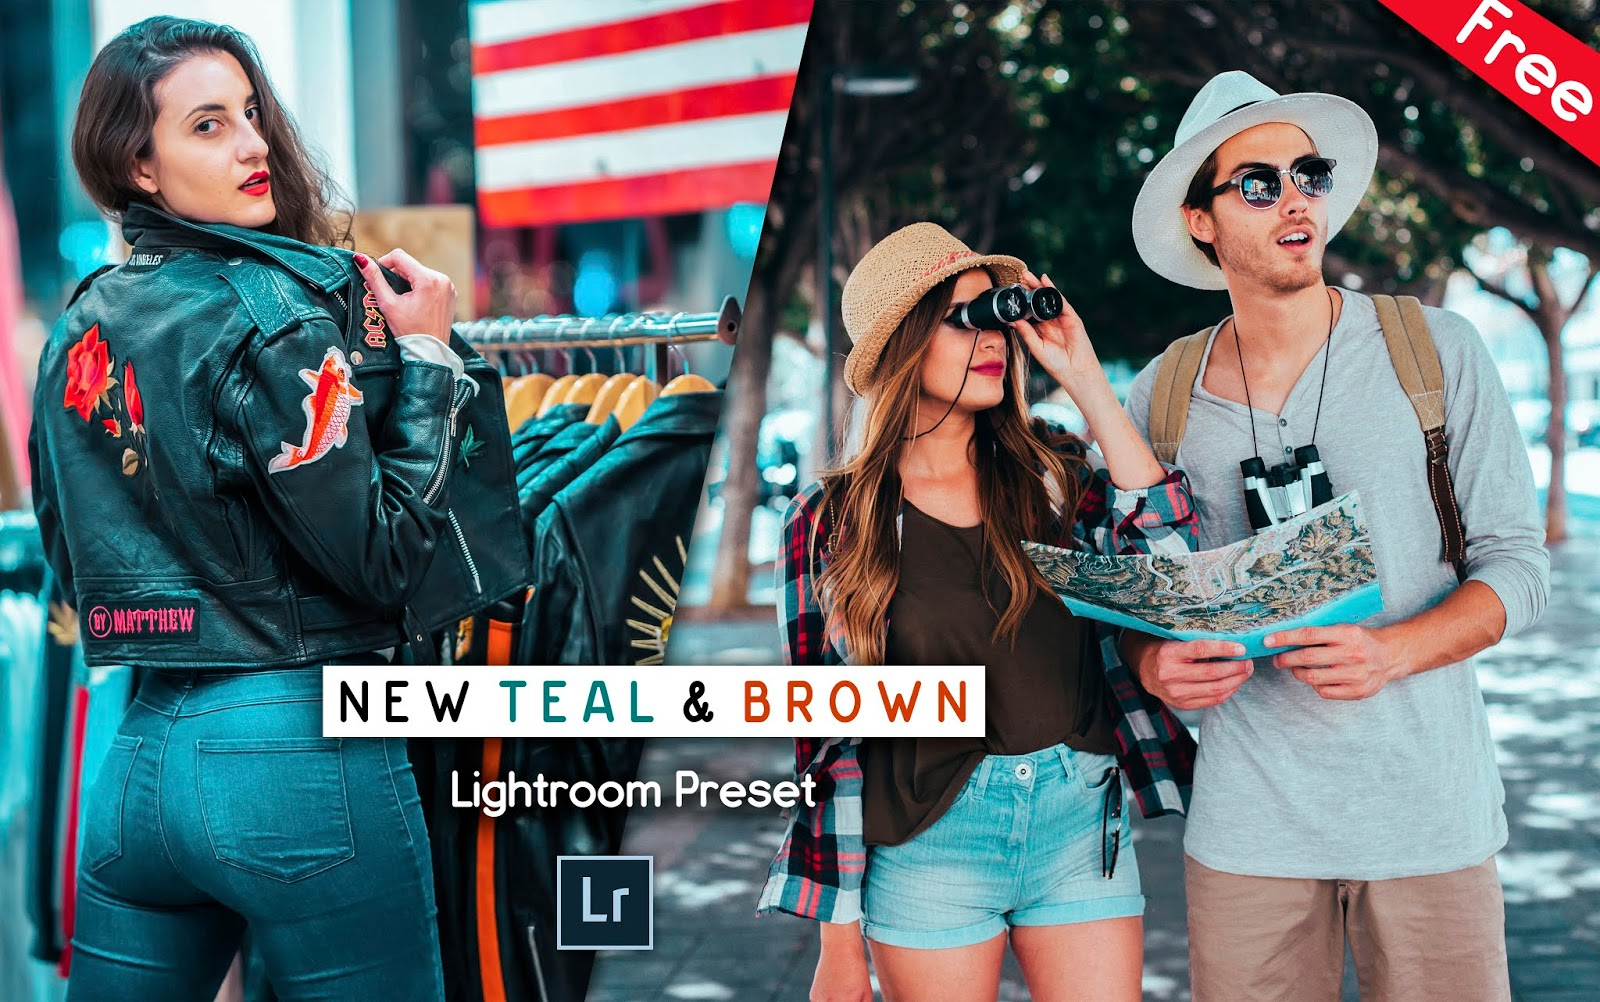 Download New Teal & Brown Lightroom Preset for Free | How to Edit New Teal & Brown in Lightroom